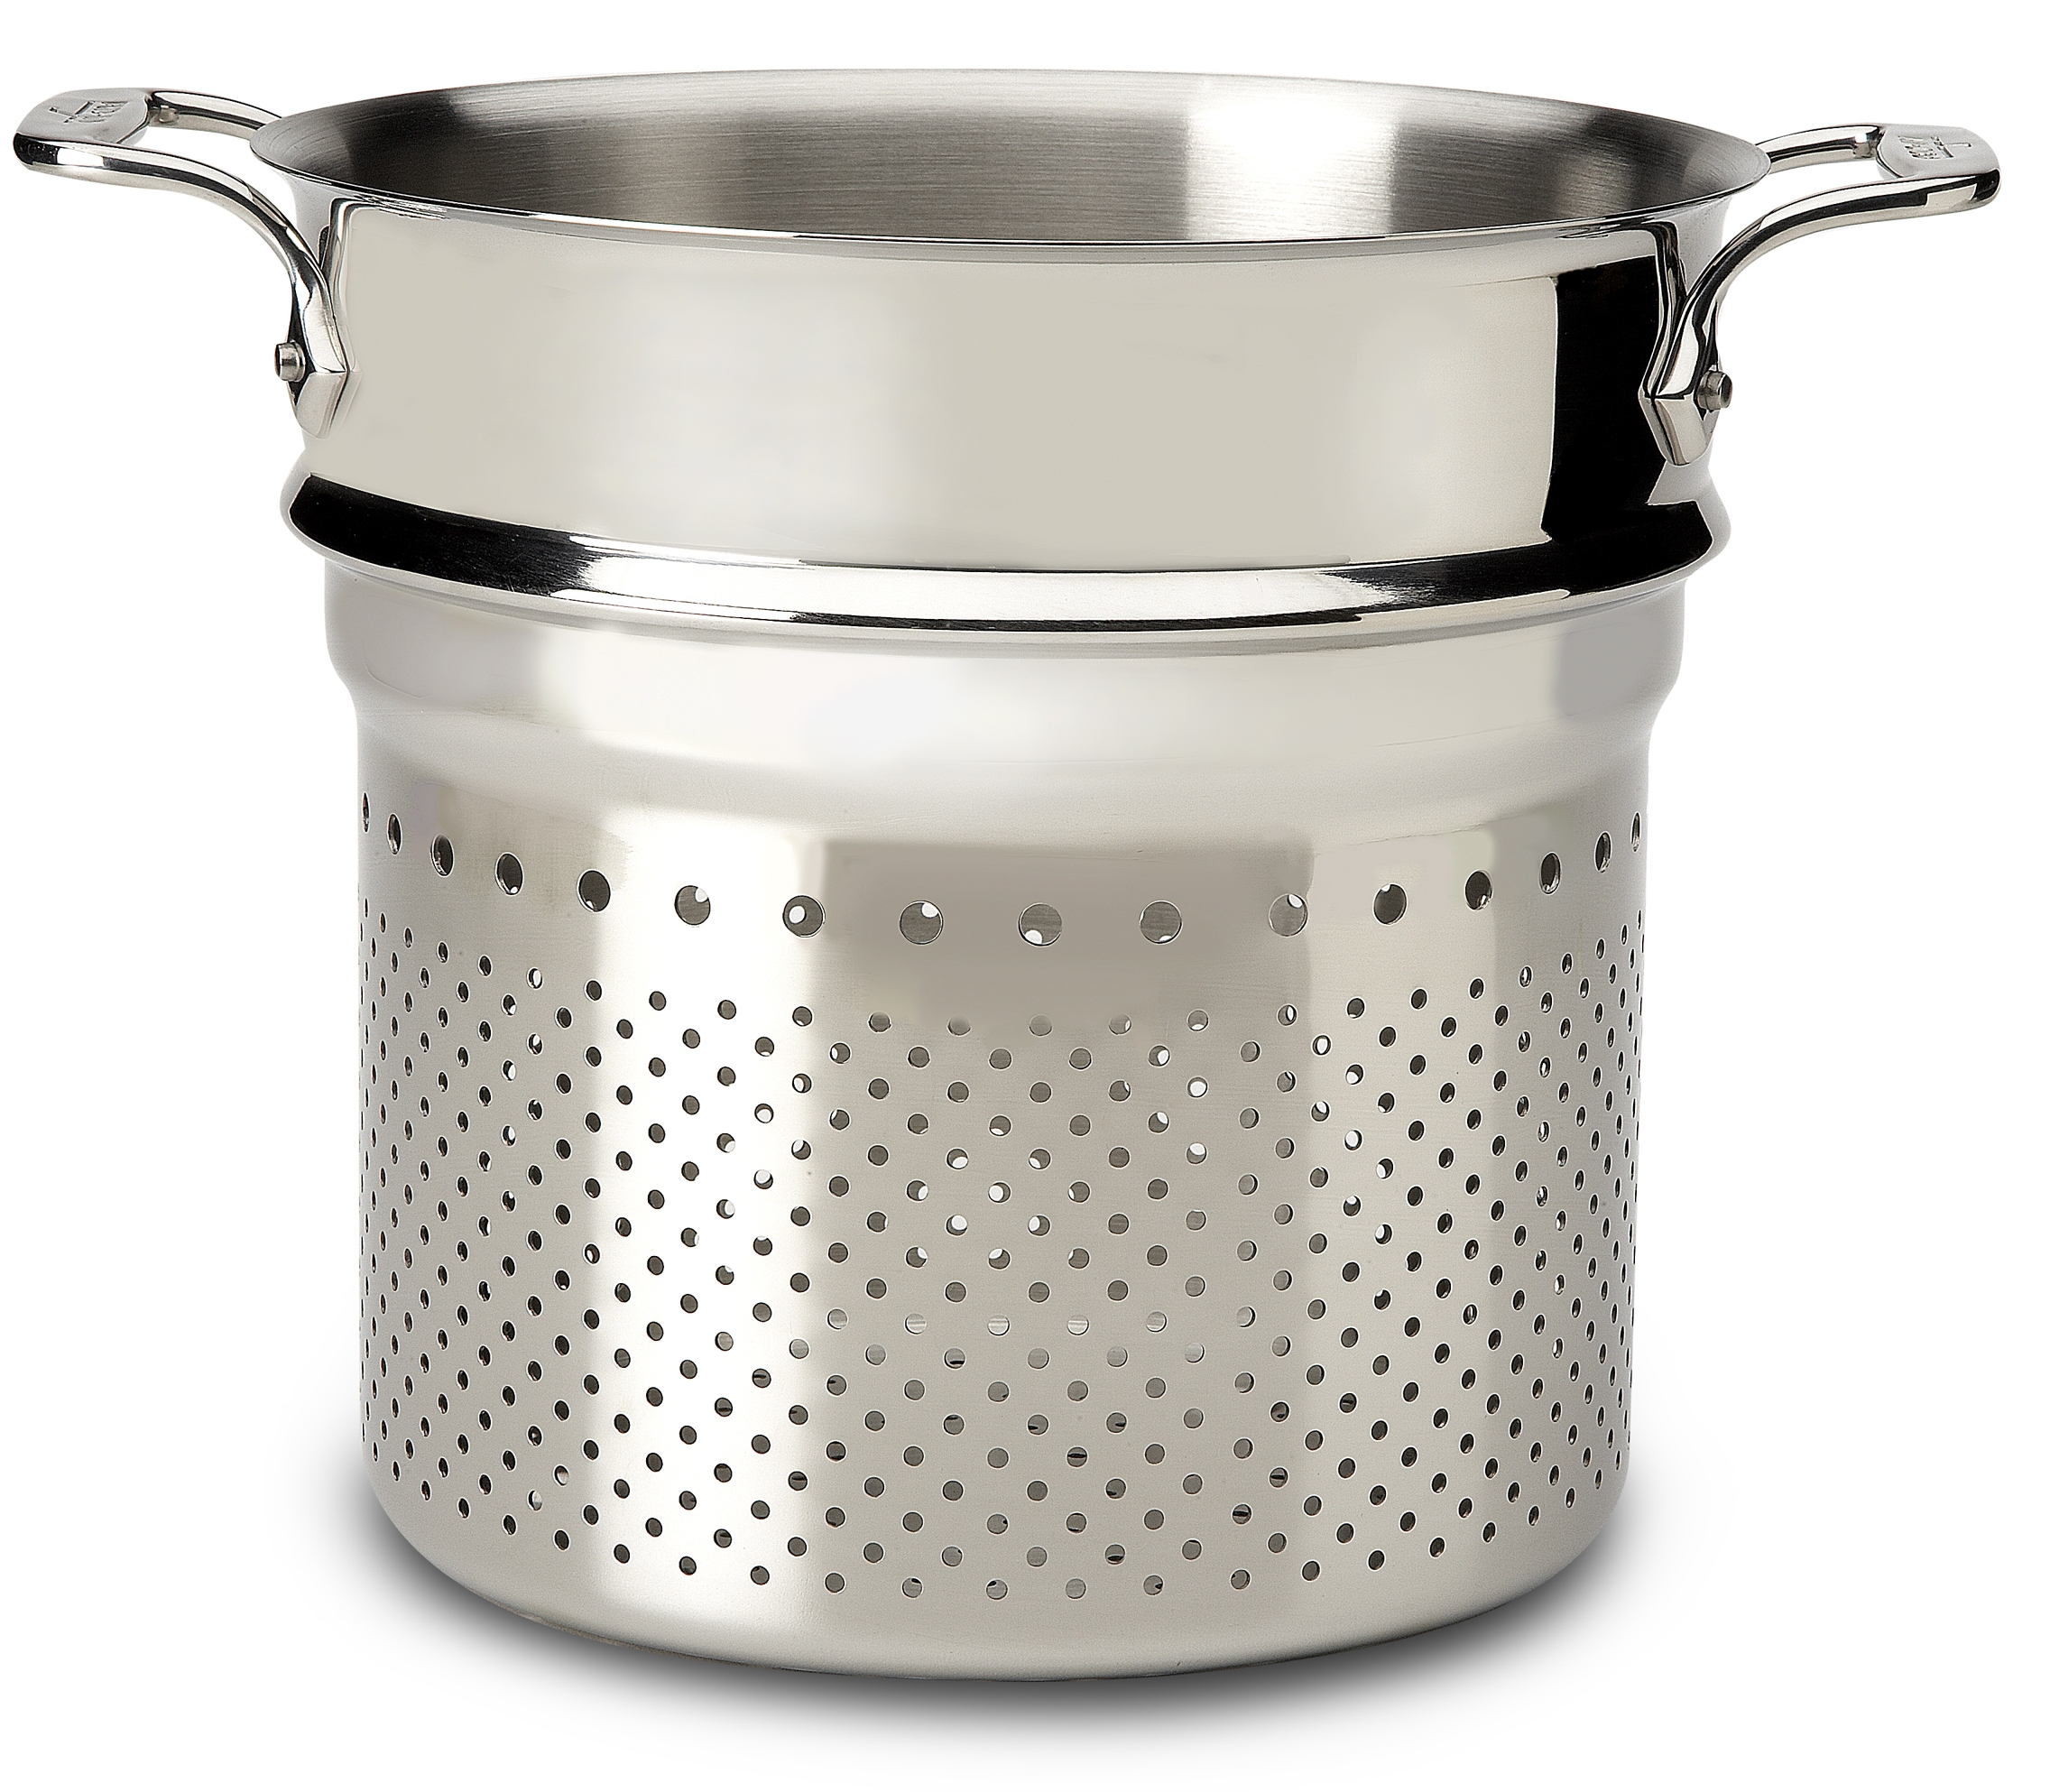 All-Clad Stainless Steel Pasta Strainer, 7 Quart